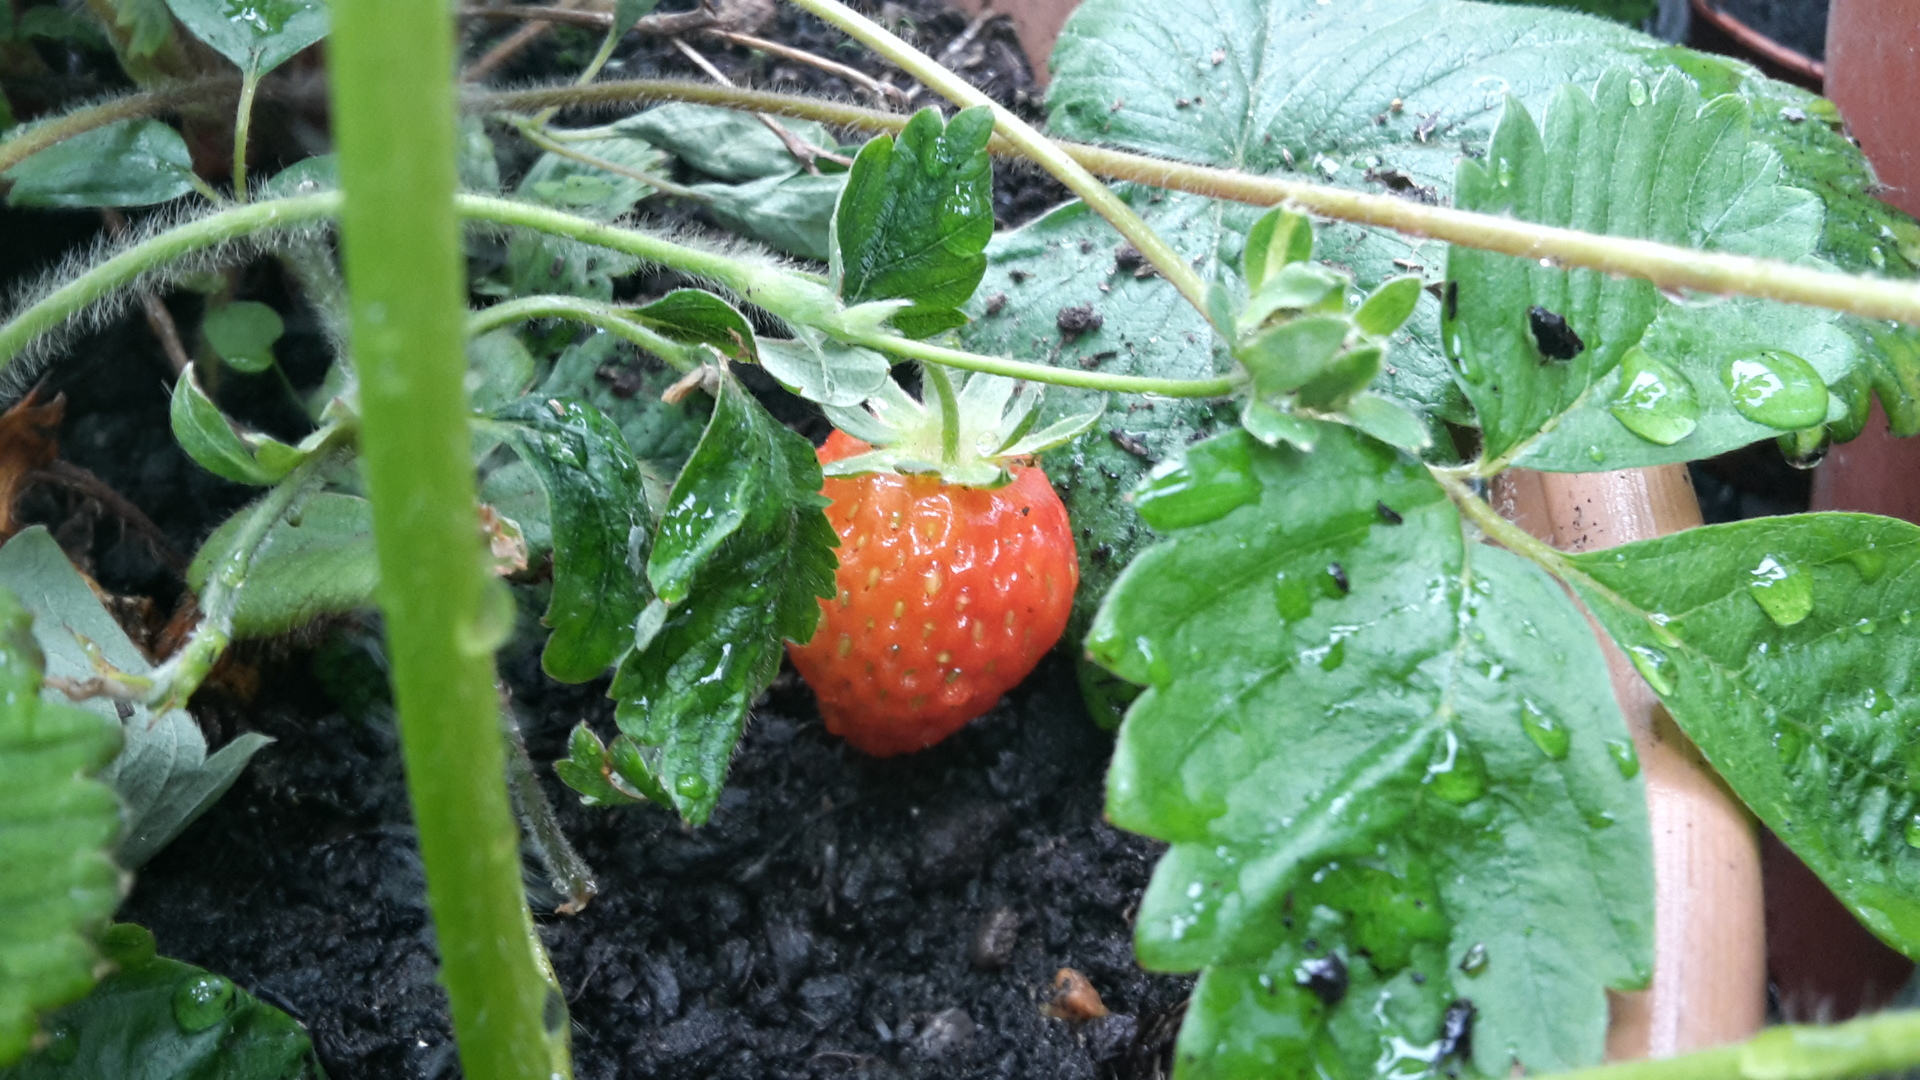 Check out the strawberry I found in my greenhouse!